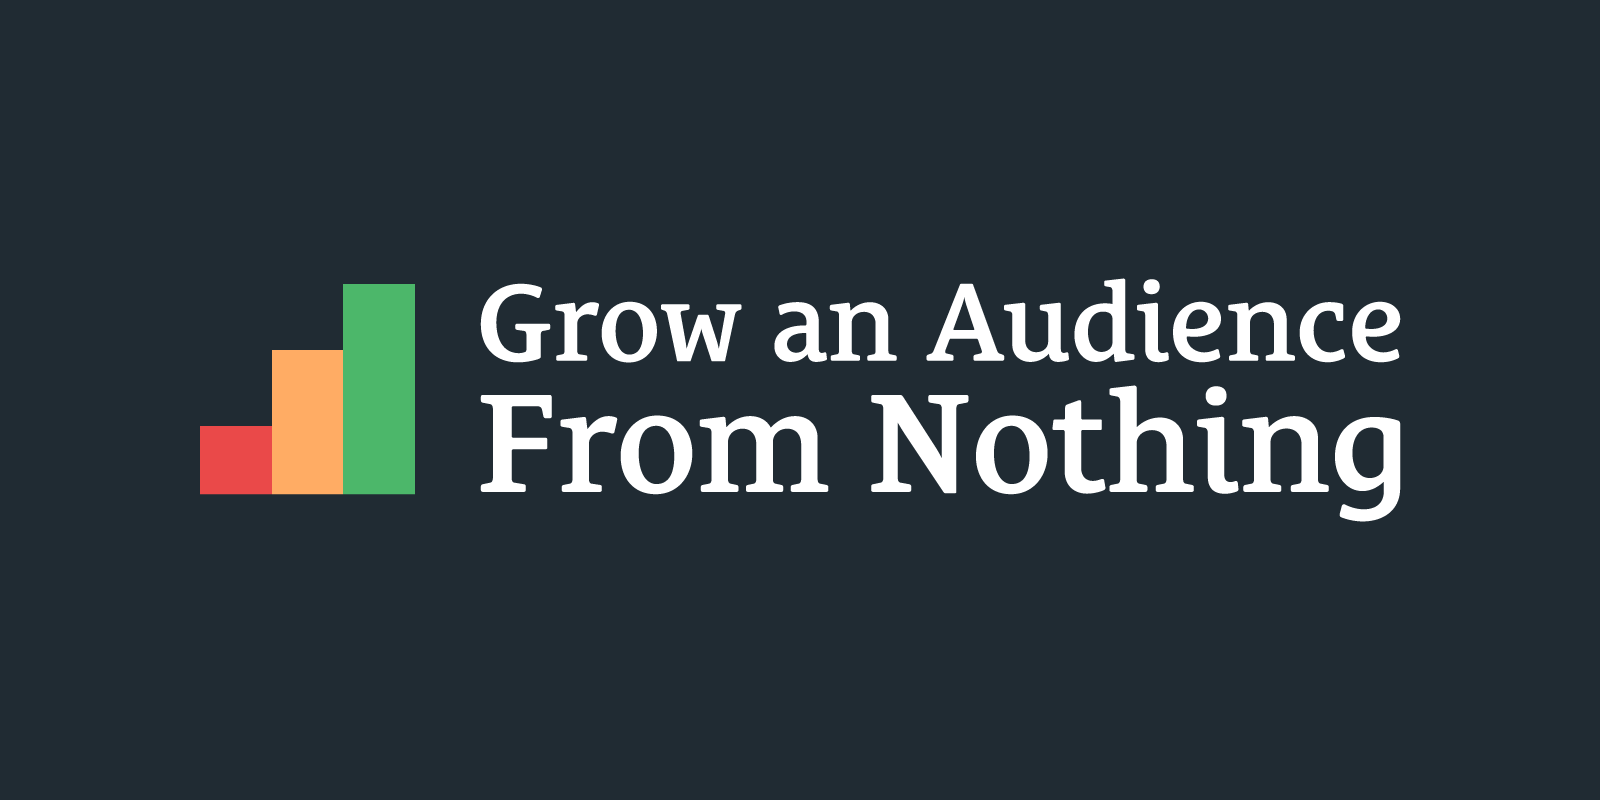 How Do I Build an Audience From Nothing?